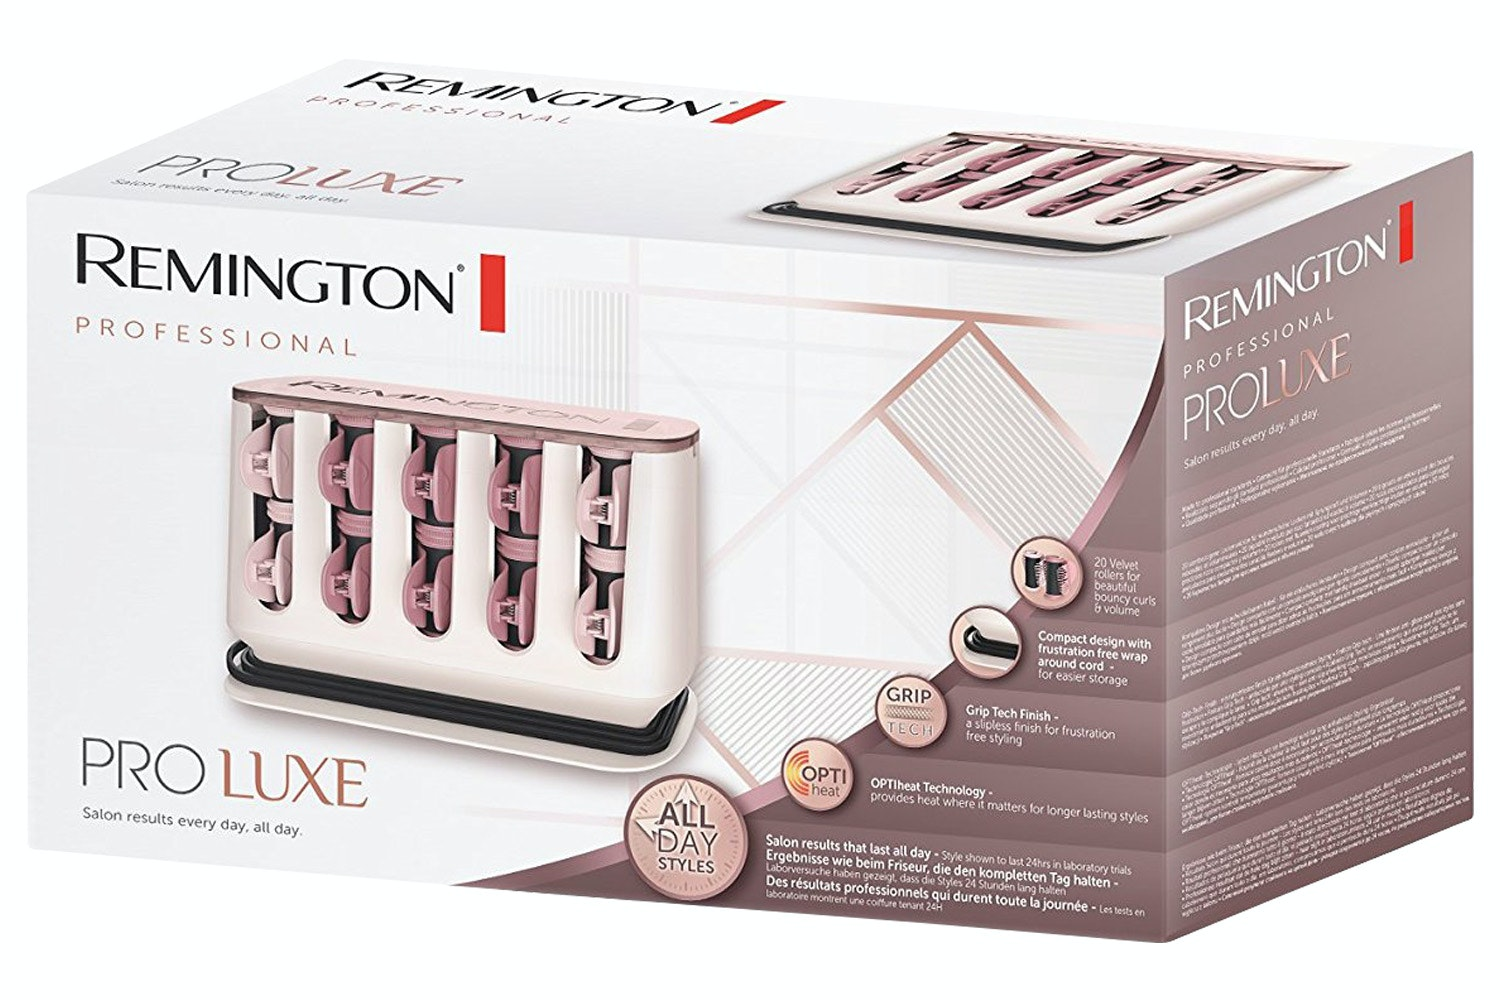 Remington Proluxe Hair Heated Rollers | H9100